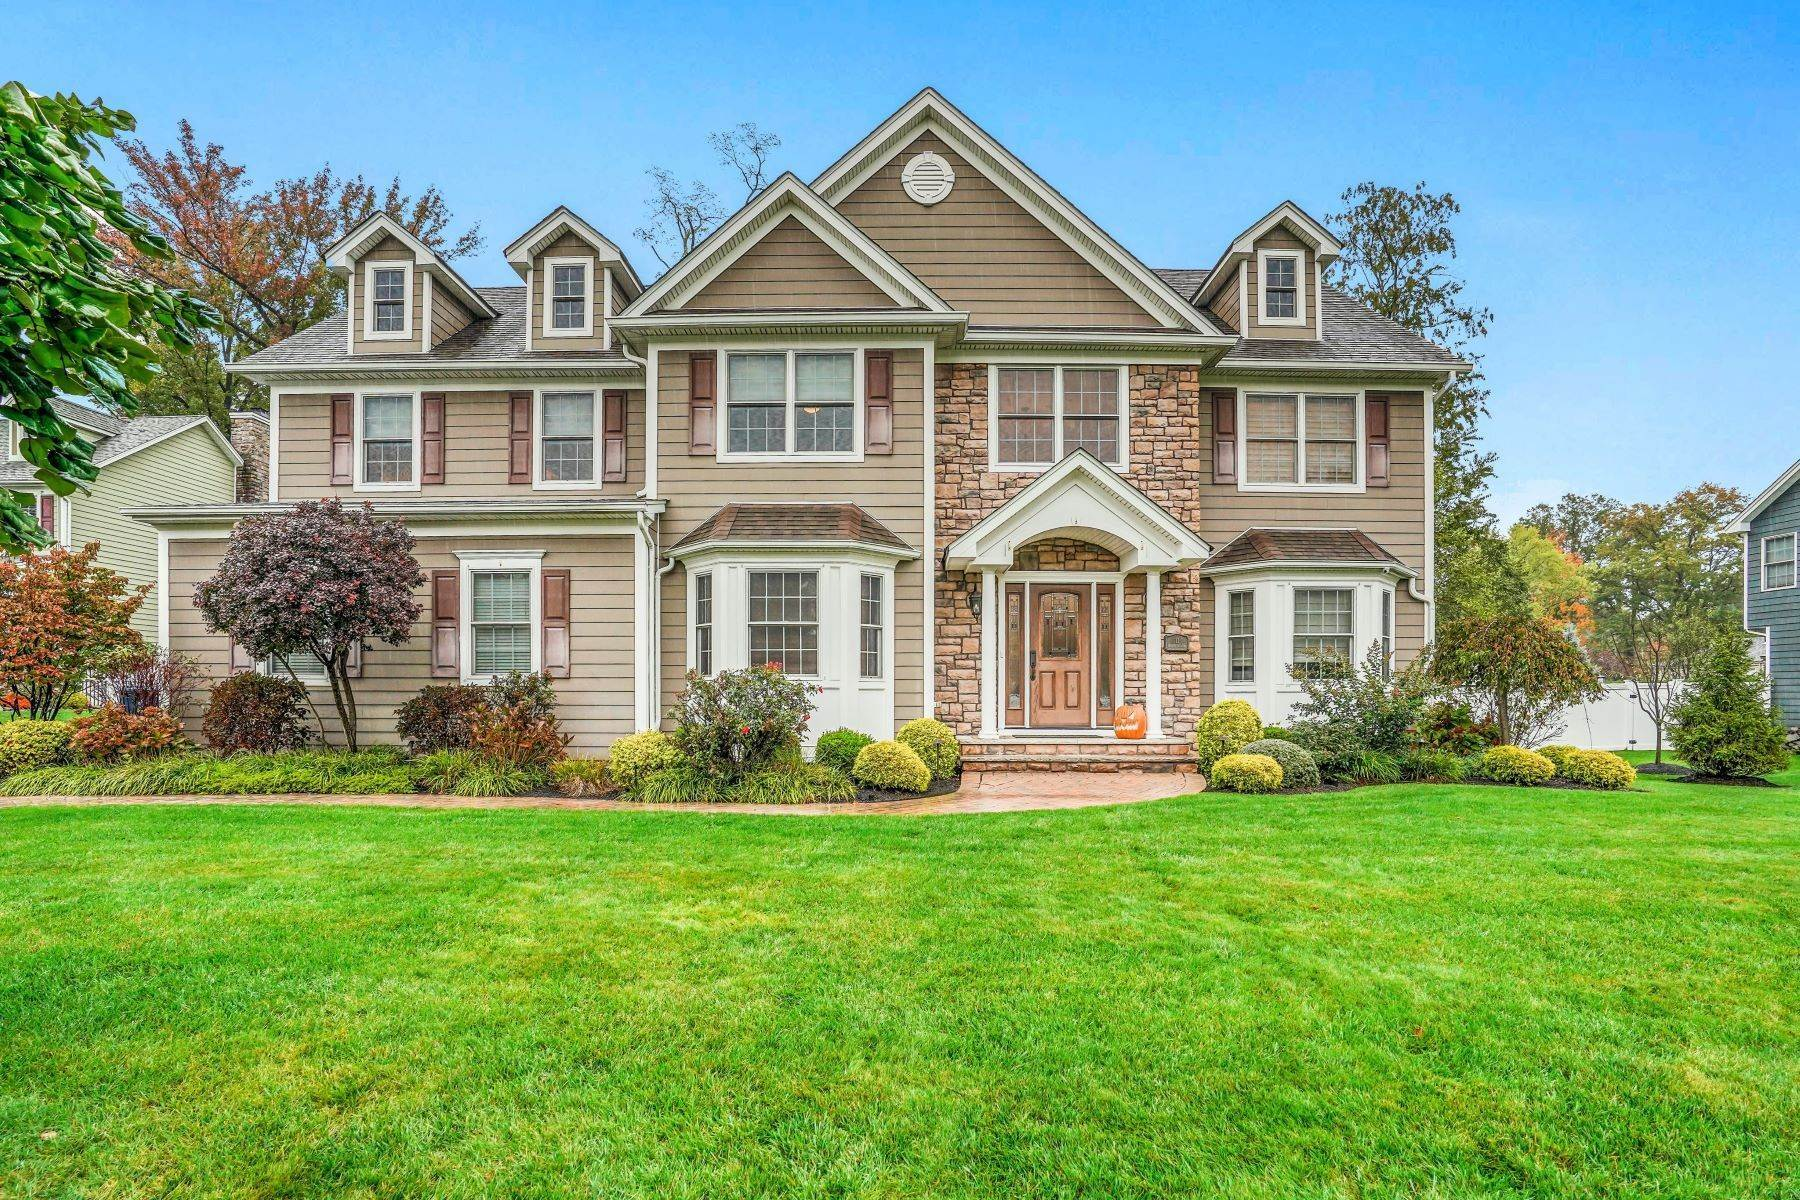 Single Family Homes for Sale at Perfect For Today's Living 11 Hidden Meadow Drive, Scotch Plains, New Jersey 07076 United States